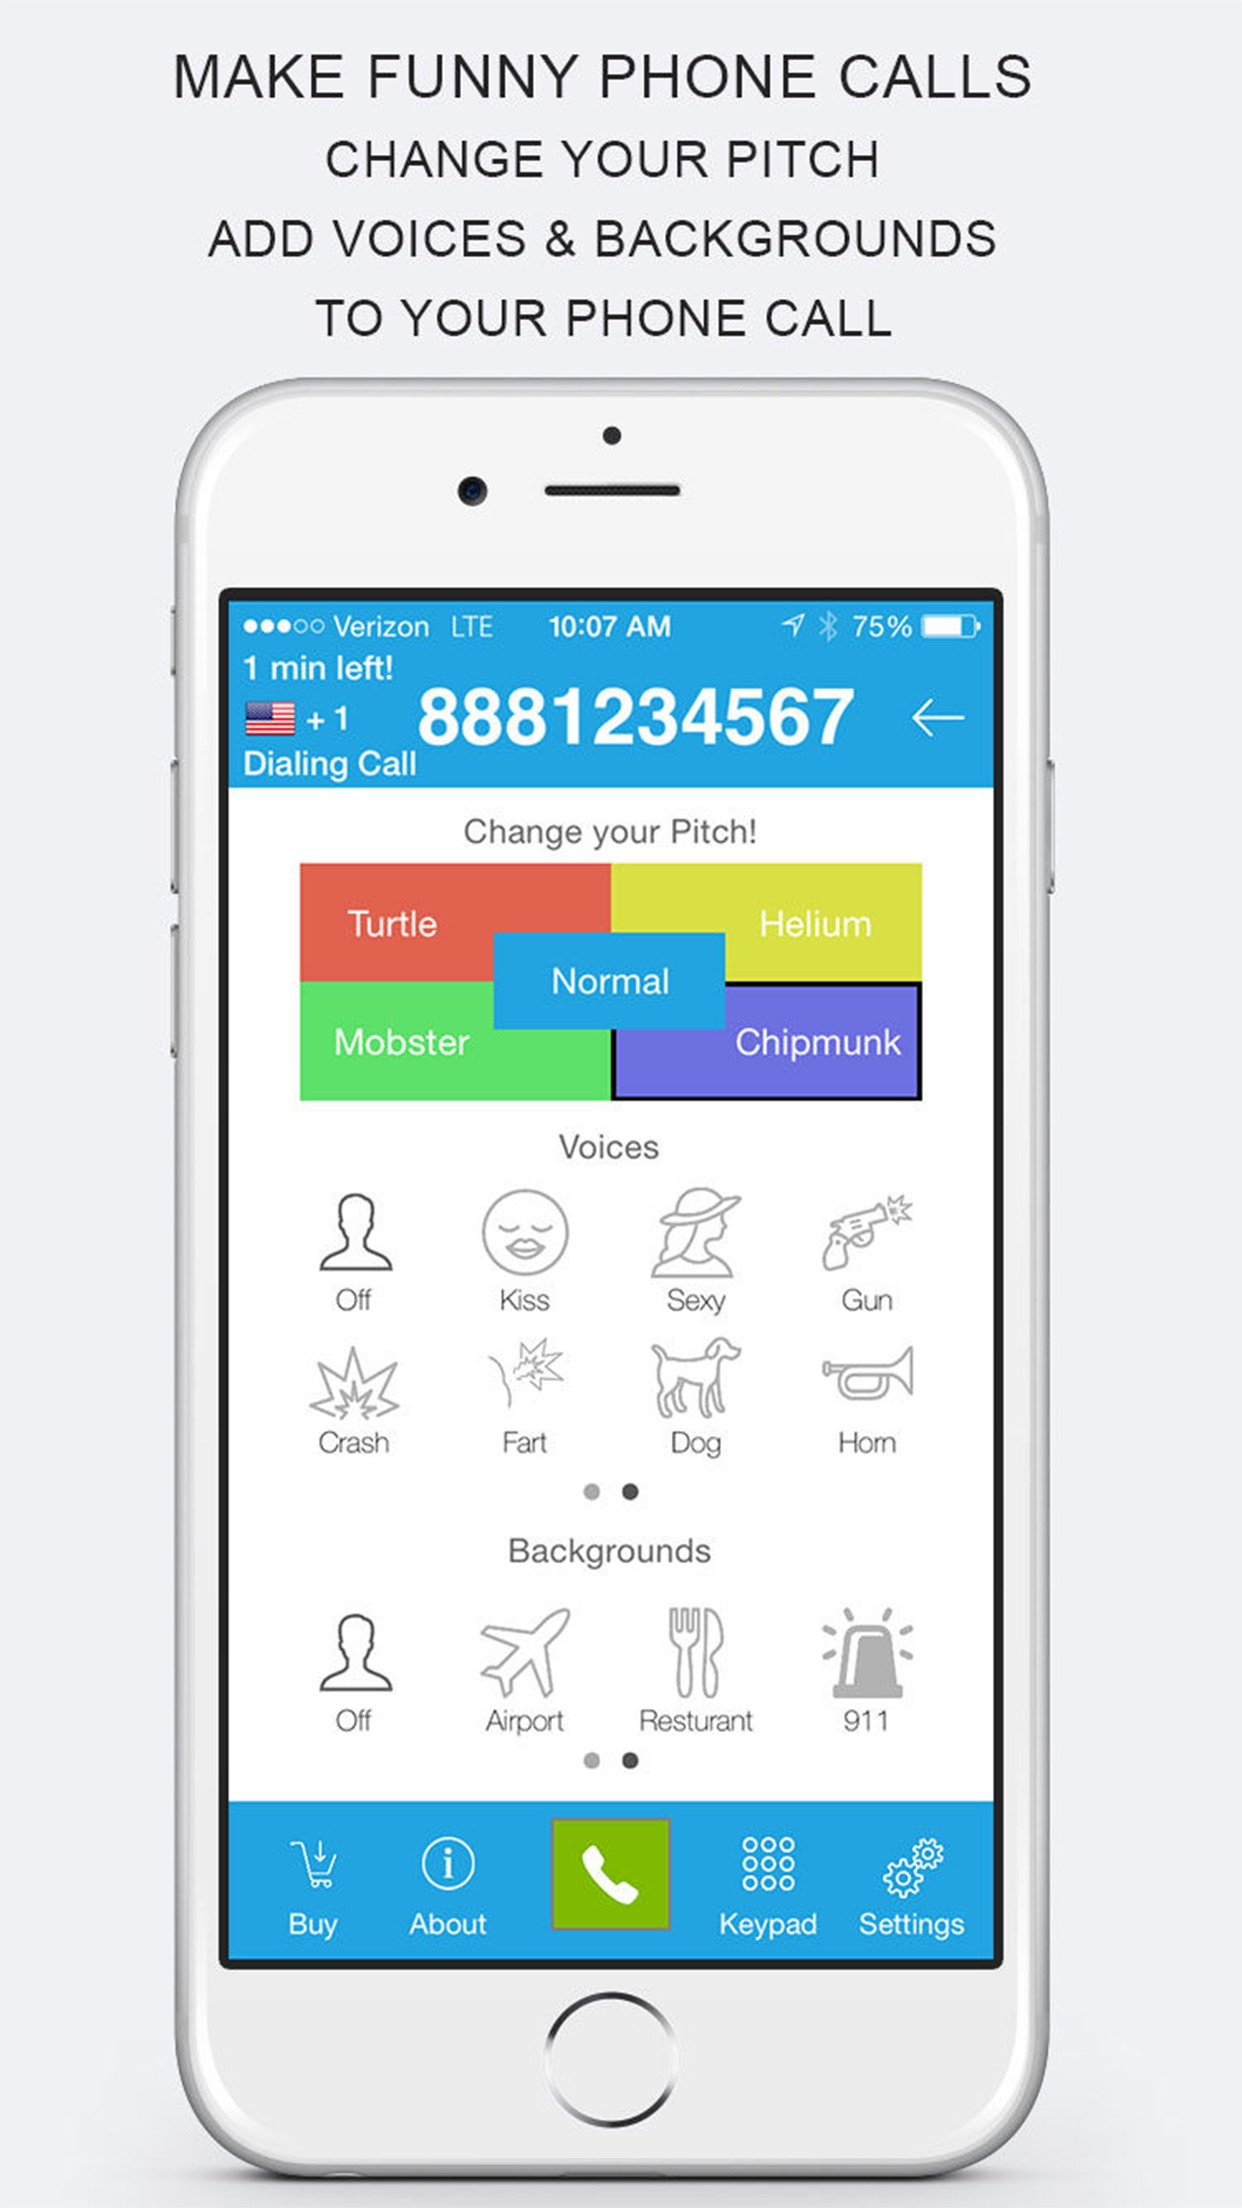 Voicy Phone - Prank Dial Call with Voice Changer Screenshot